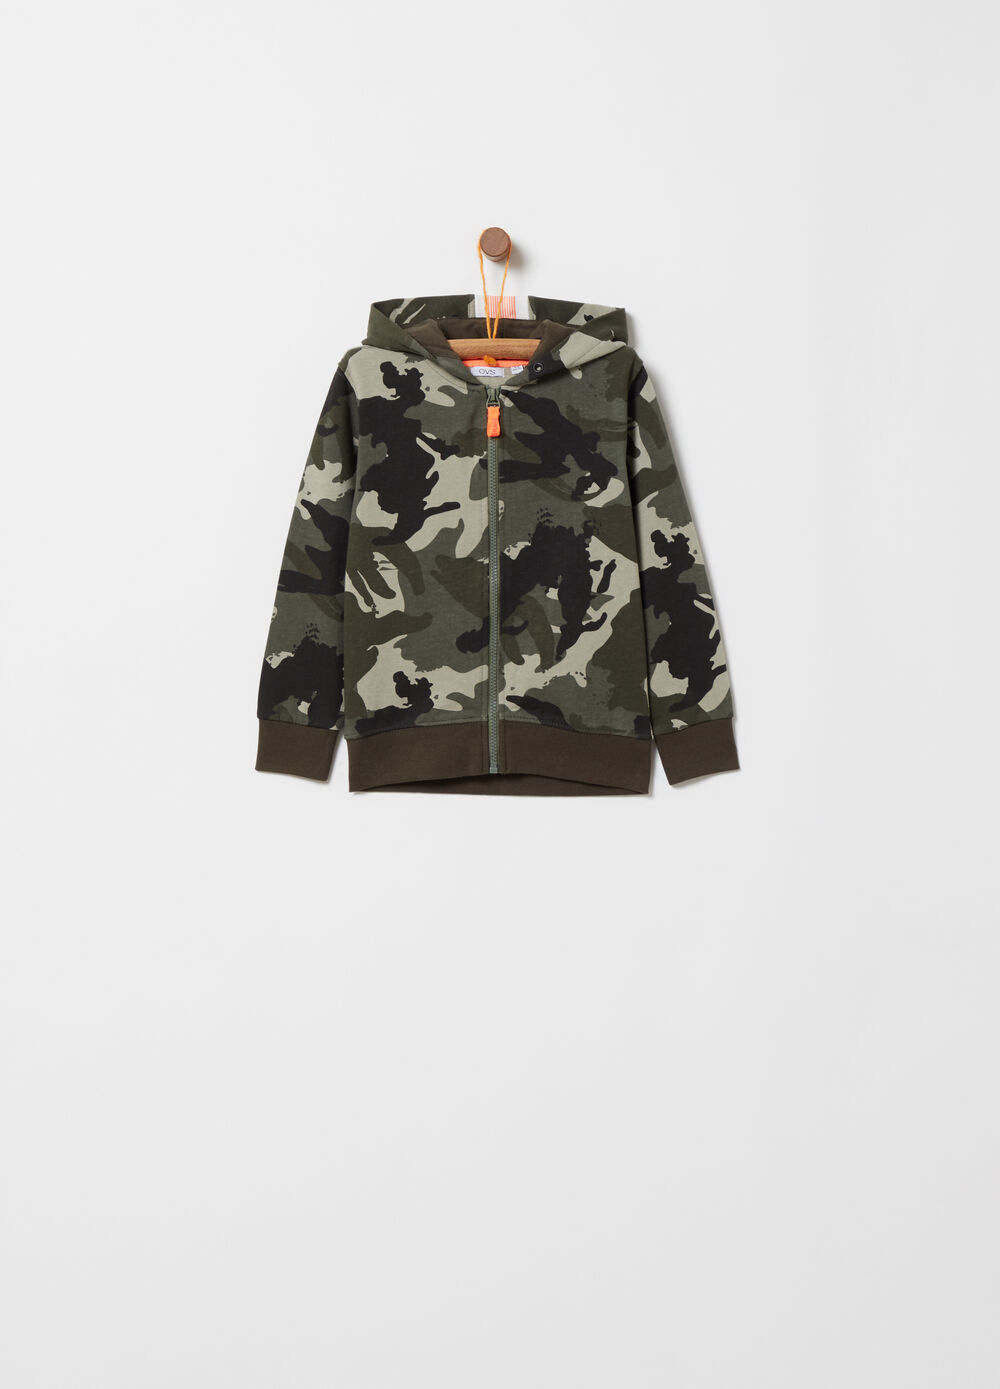 All-over camouflage lightweight sweatshirt